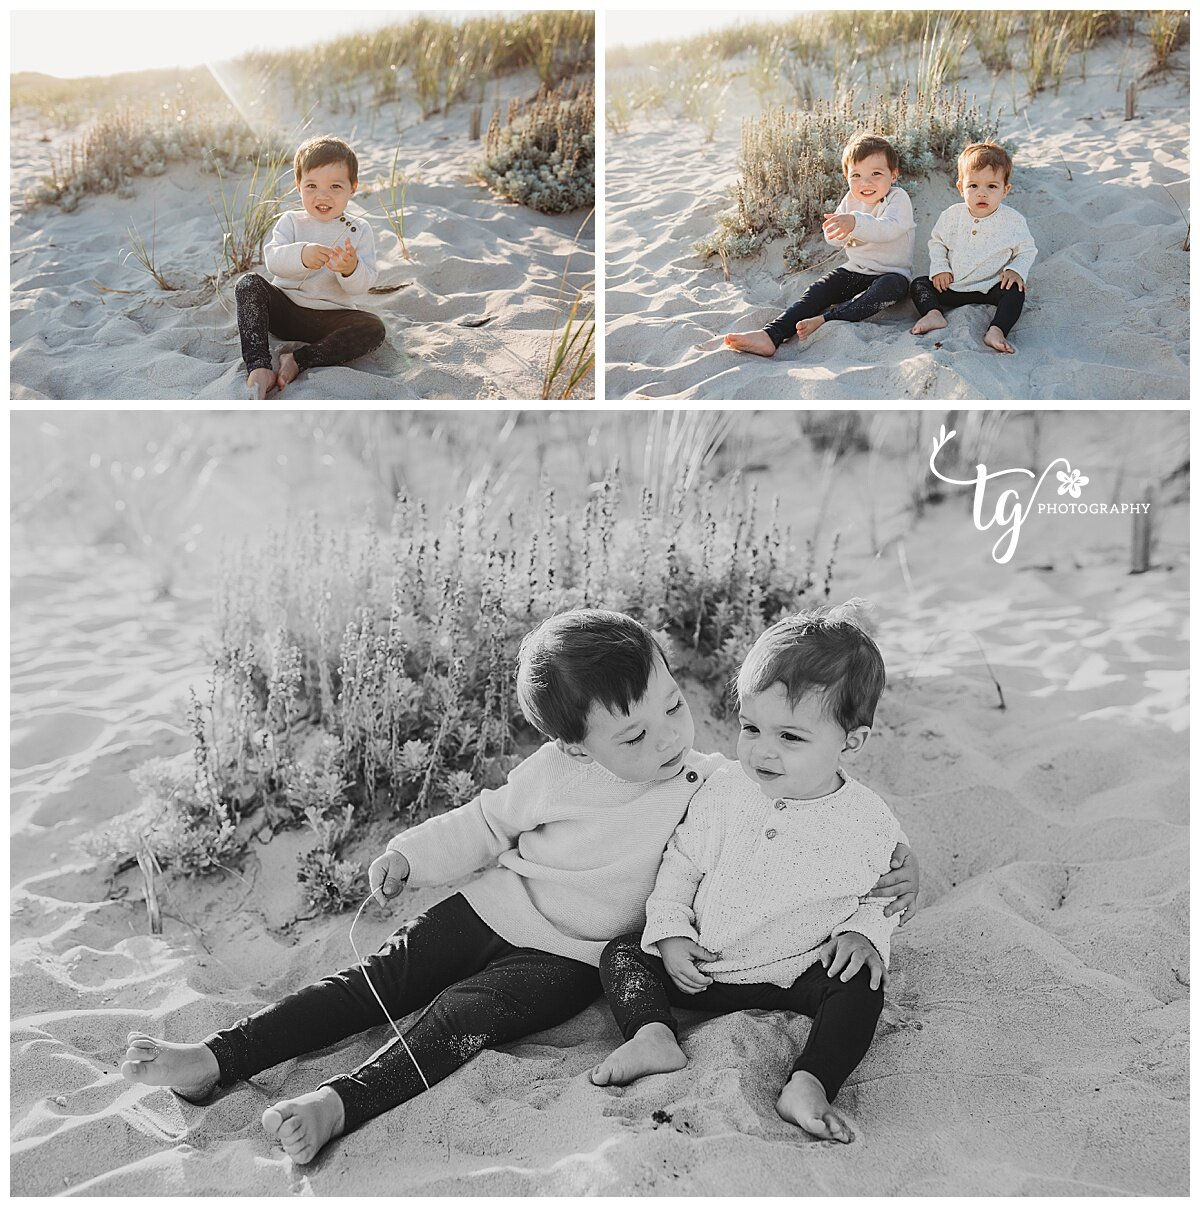 photo session with cousins